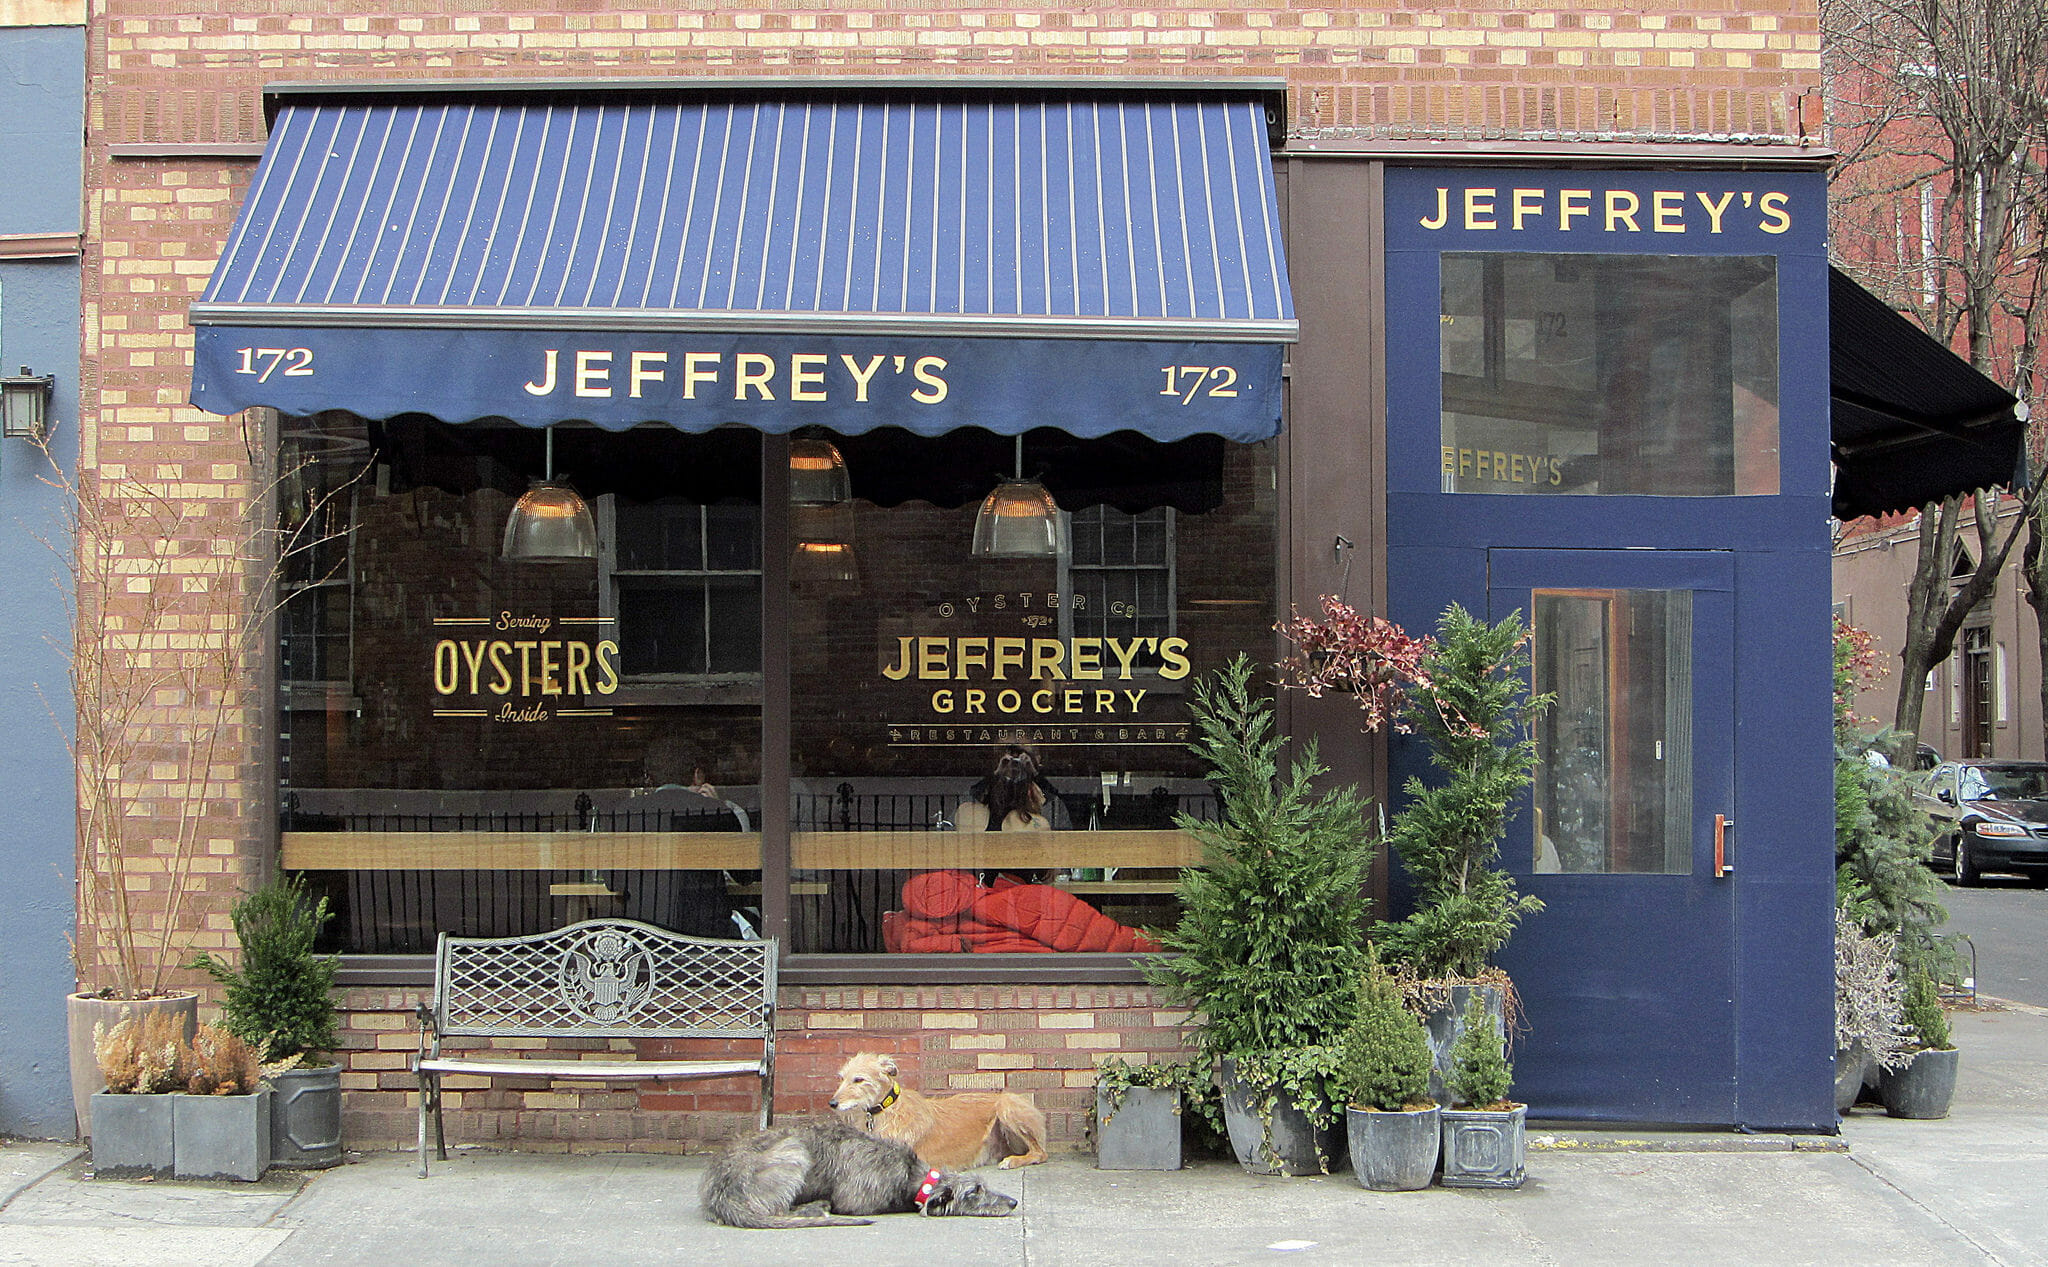 jeffery's grocery: NYC Happy Hours with (Good) Food: